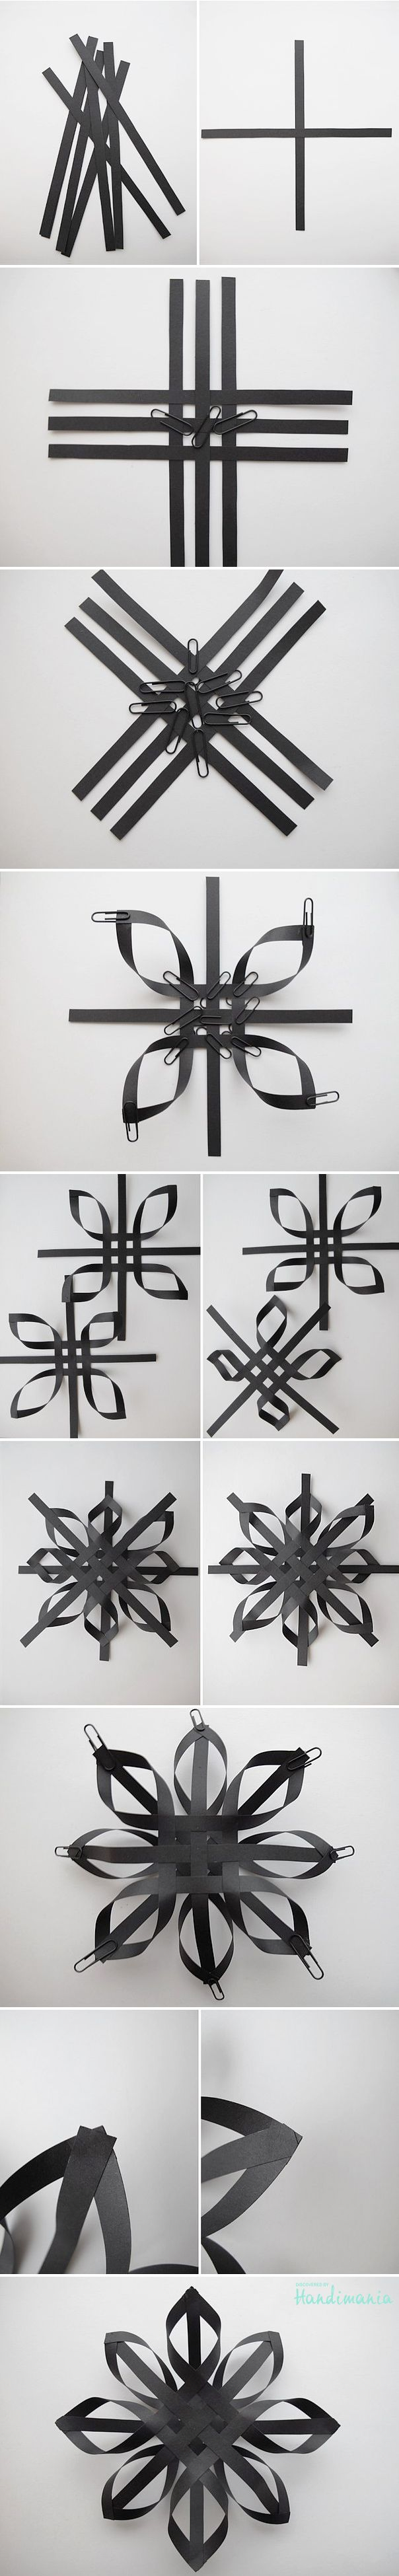 Black paper snowflakes for the walls?